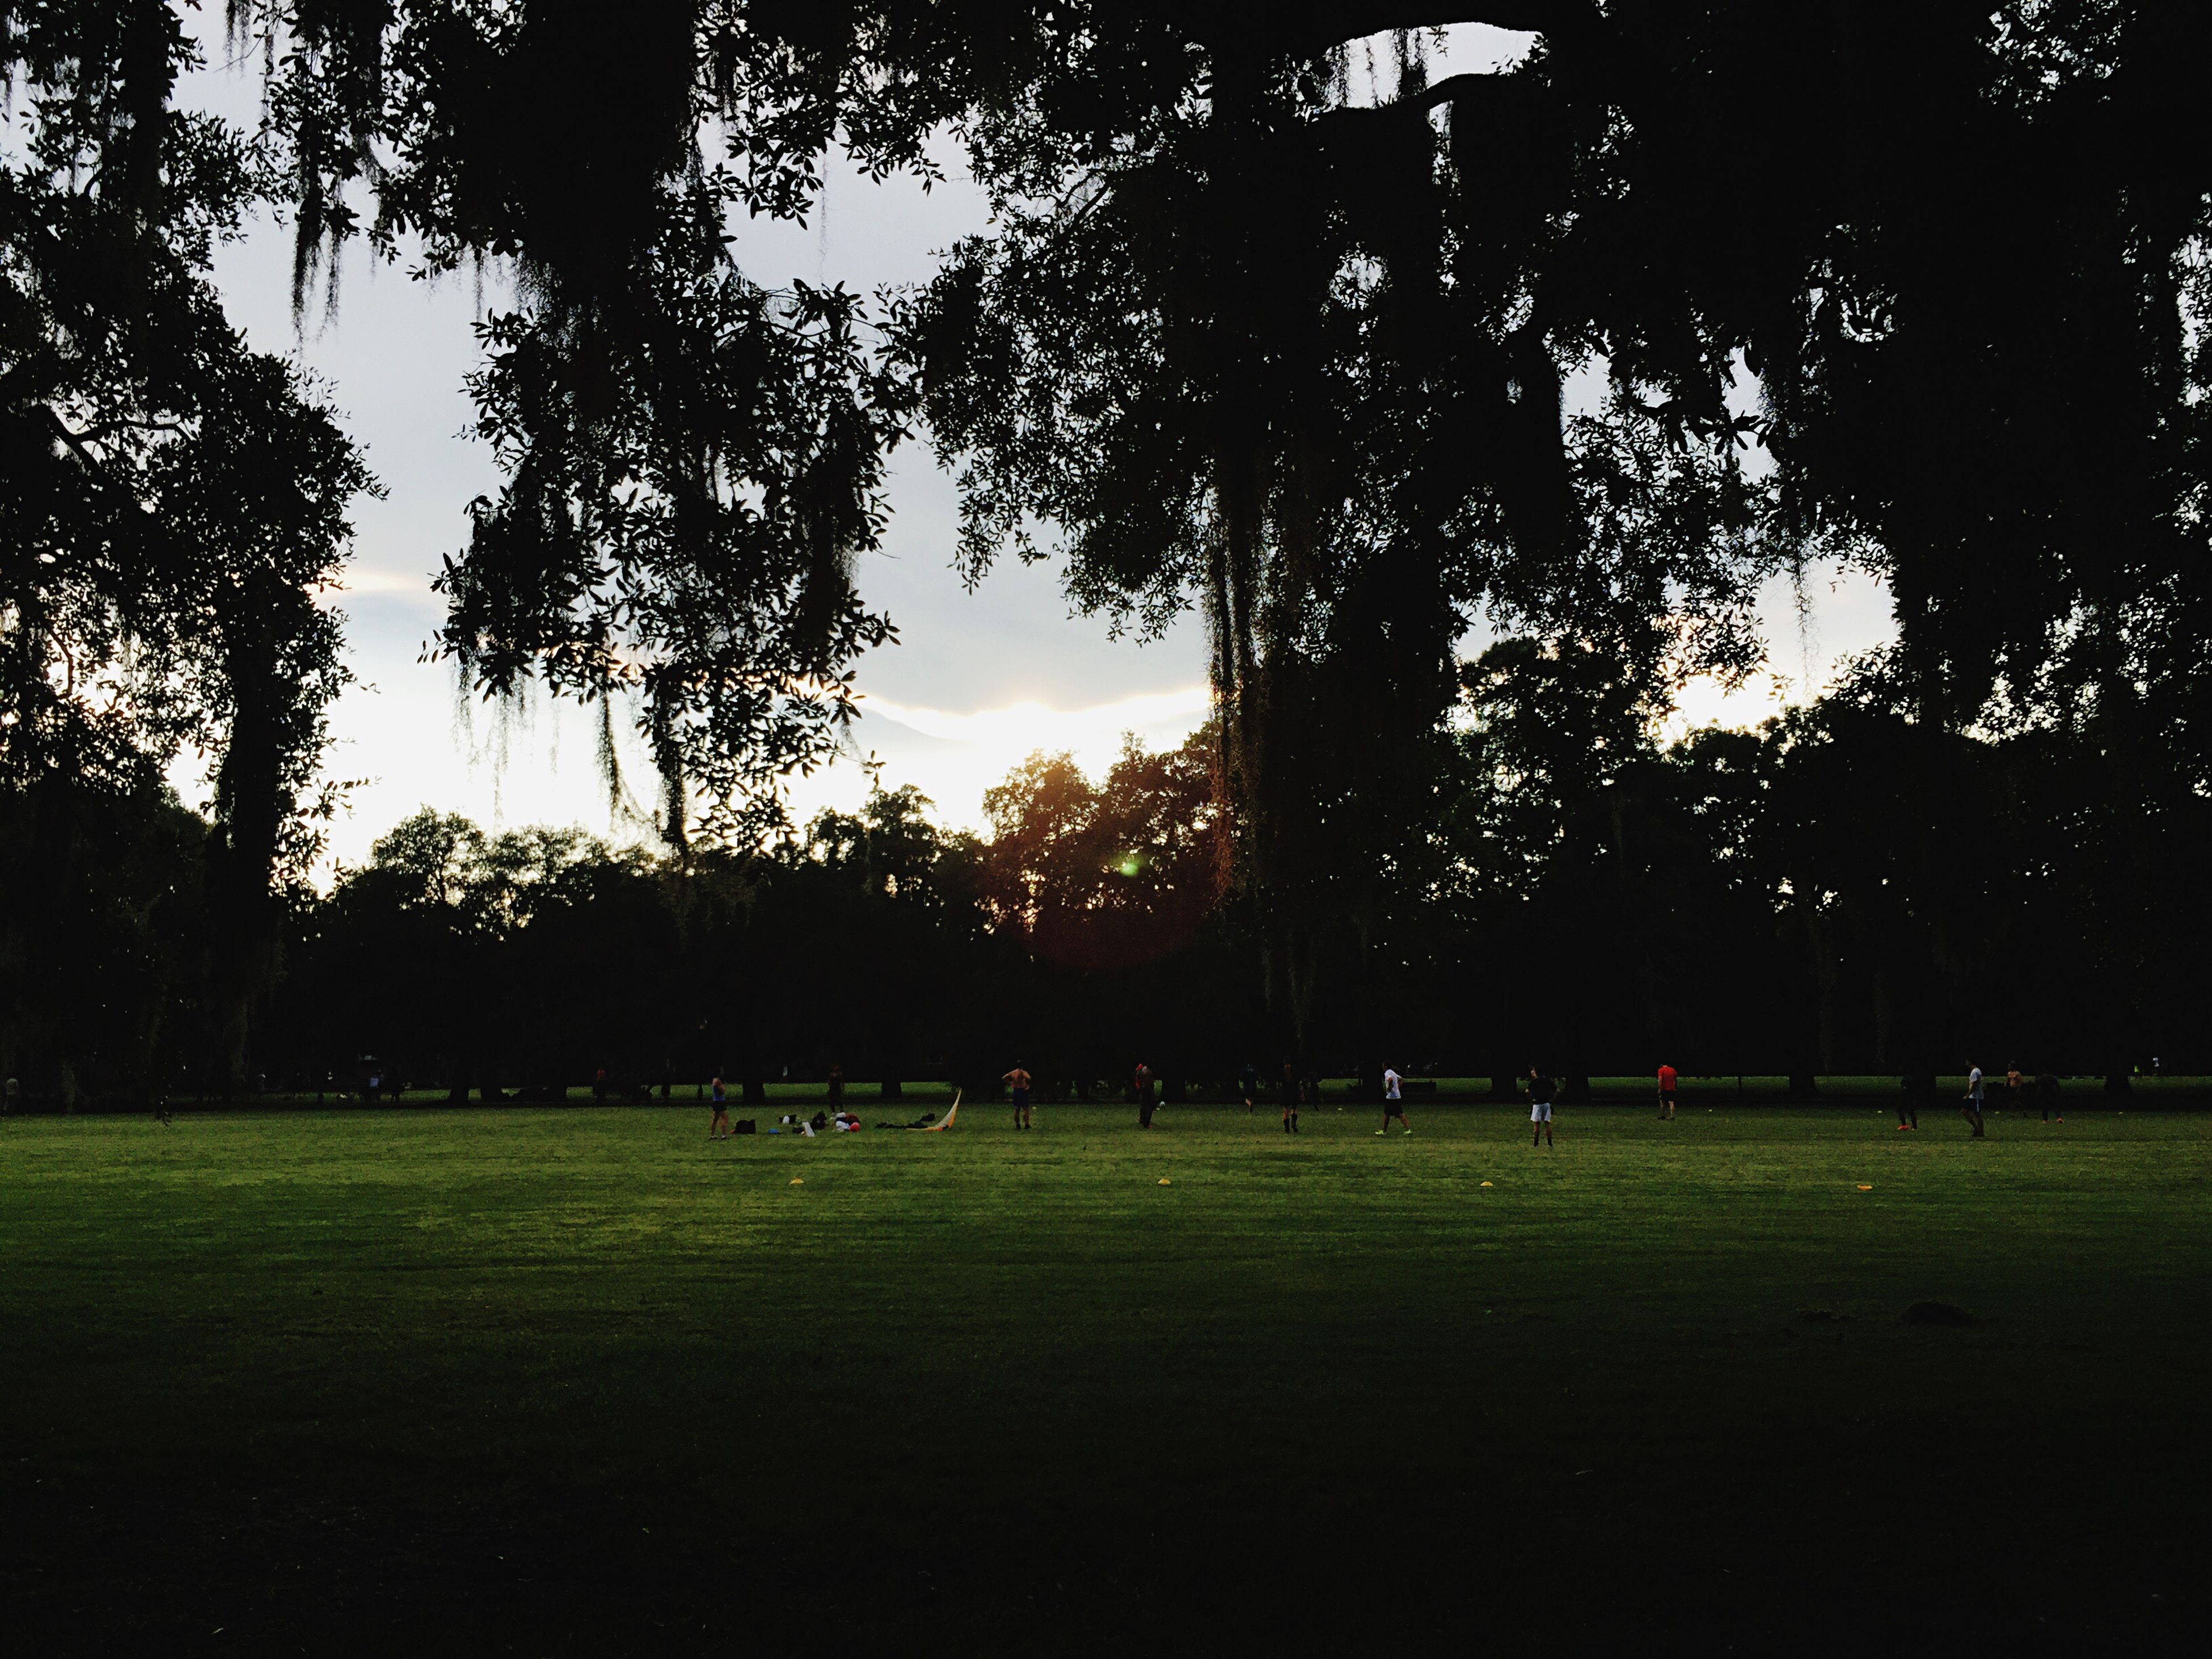 tree, grass, large group of people, park - man made space, green color, tranquility, tranquil scene, growth, nature, sky, beauty in nature, lawn, park, outdoors, scenics, green, remote, grassland